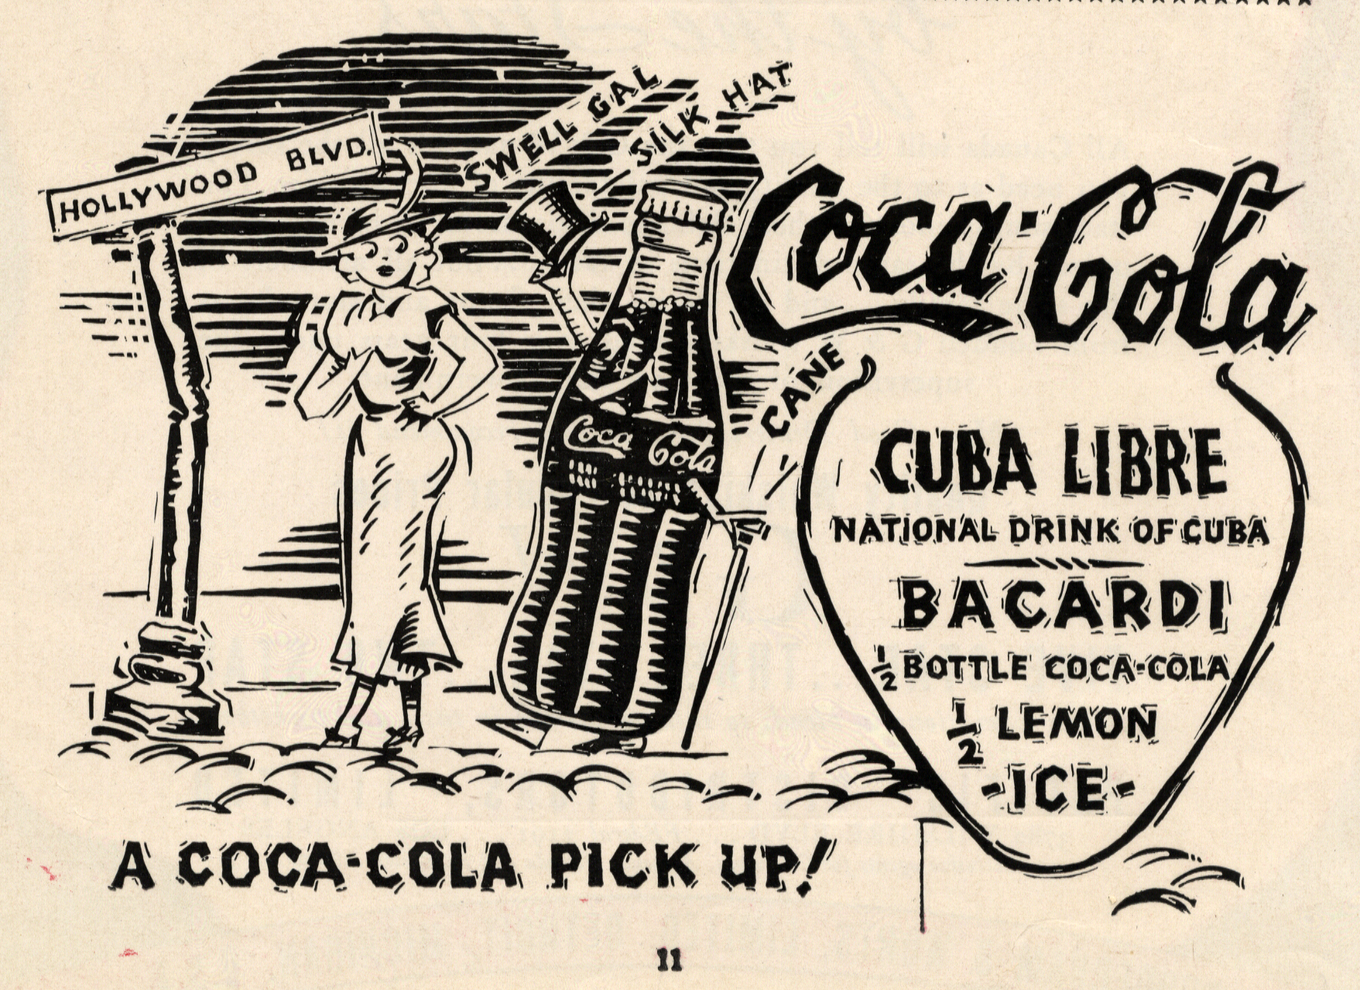 Coke & Highballs image 1